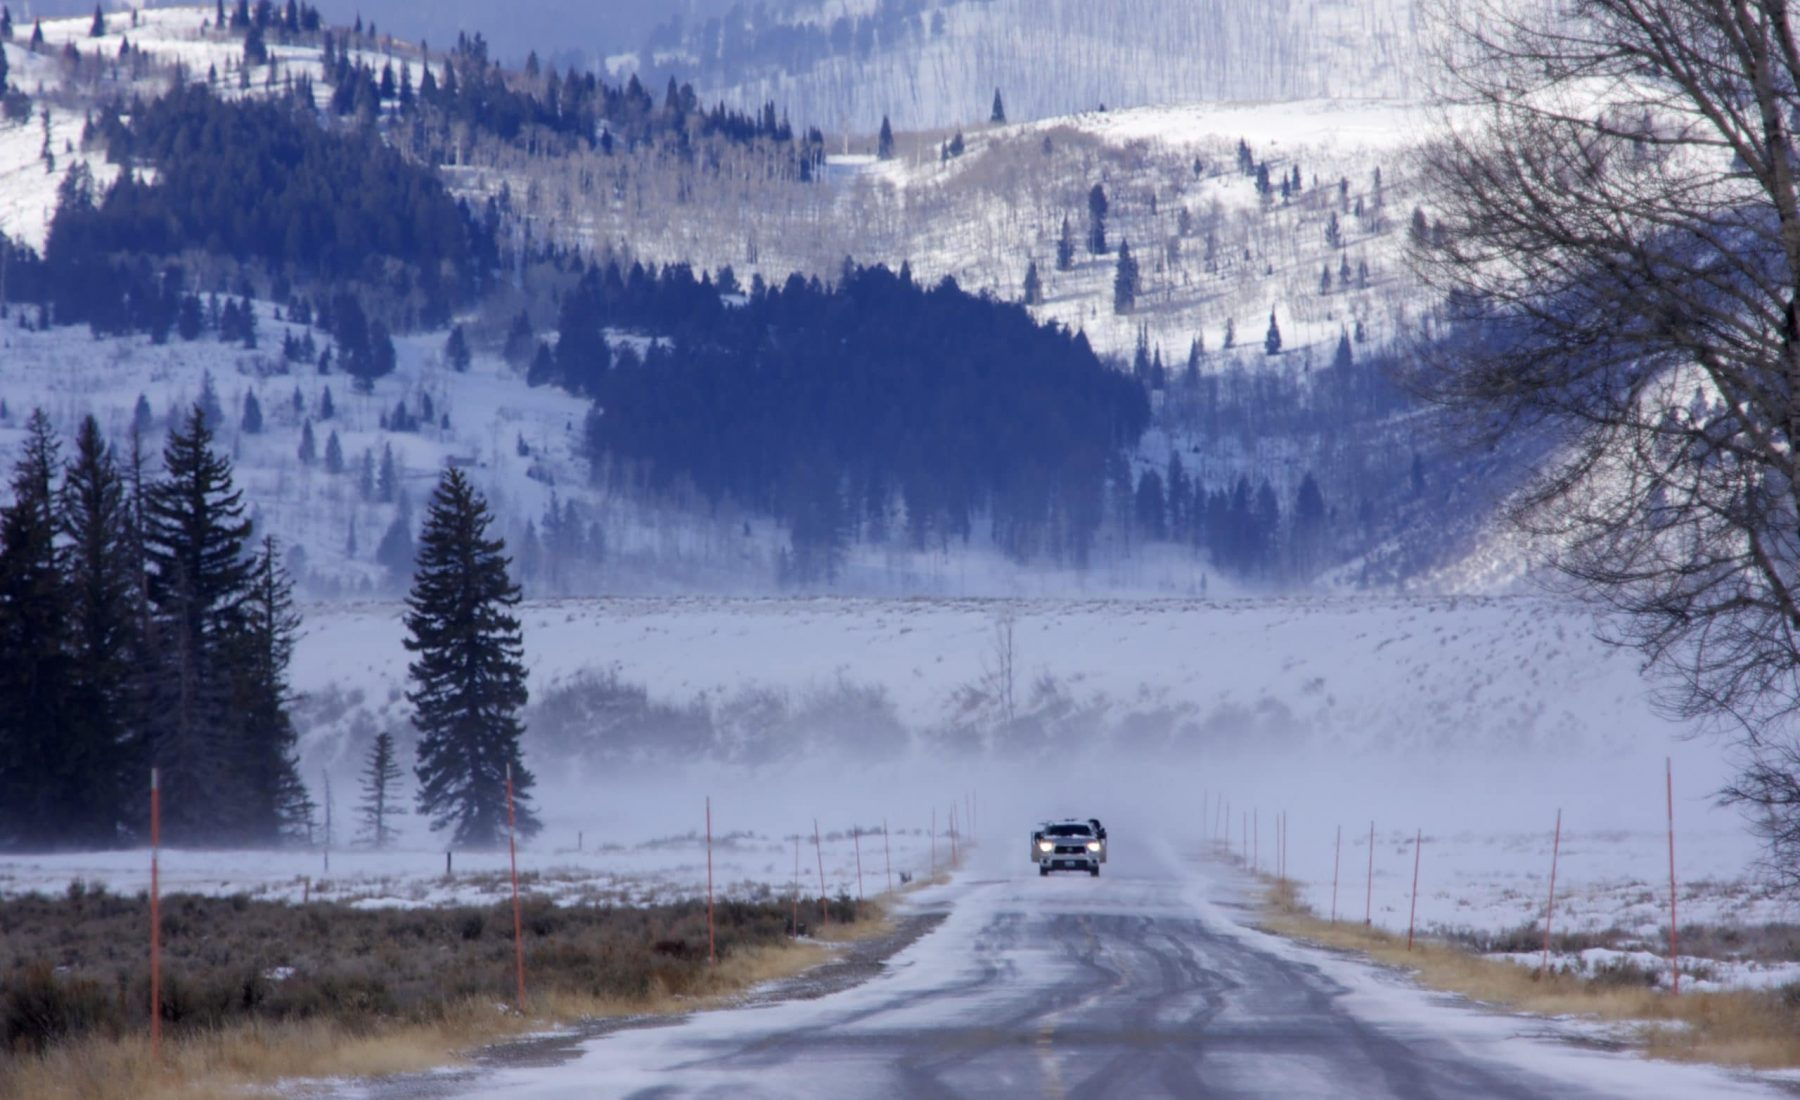 Day 4: Tetons to West Yellowstone